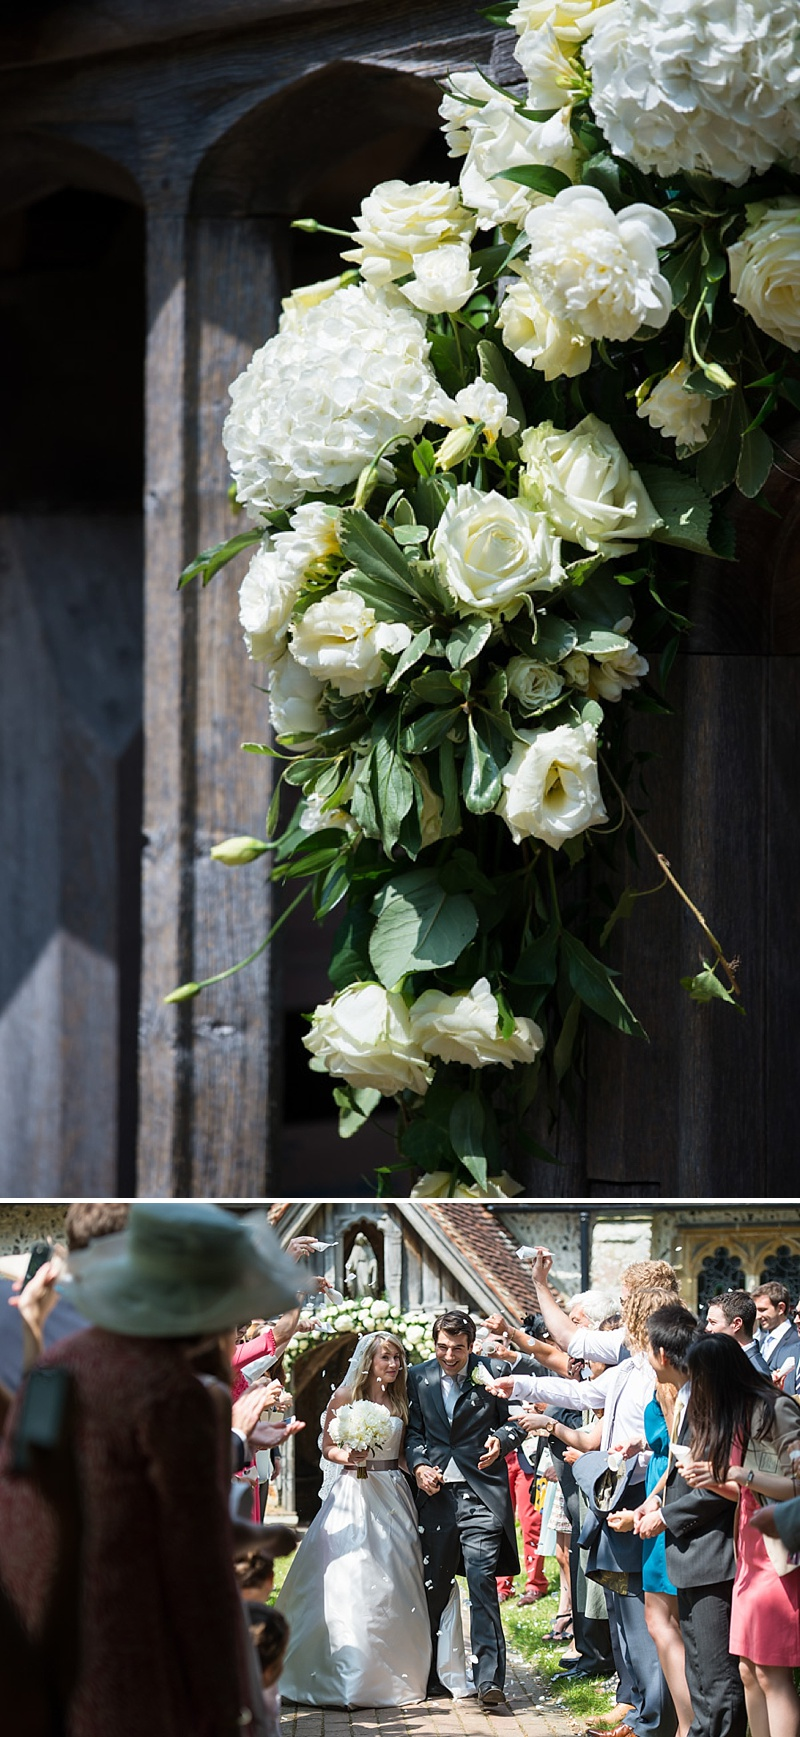 Ivory And Grey Themed Wedding At Birling Manor, Sussex, Bride In Opulence by Suzanne Neville, Images By Especially Amy_0004